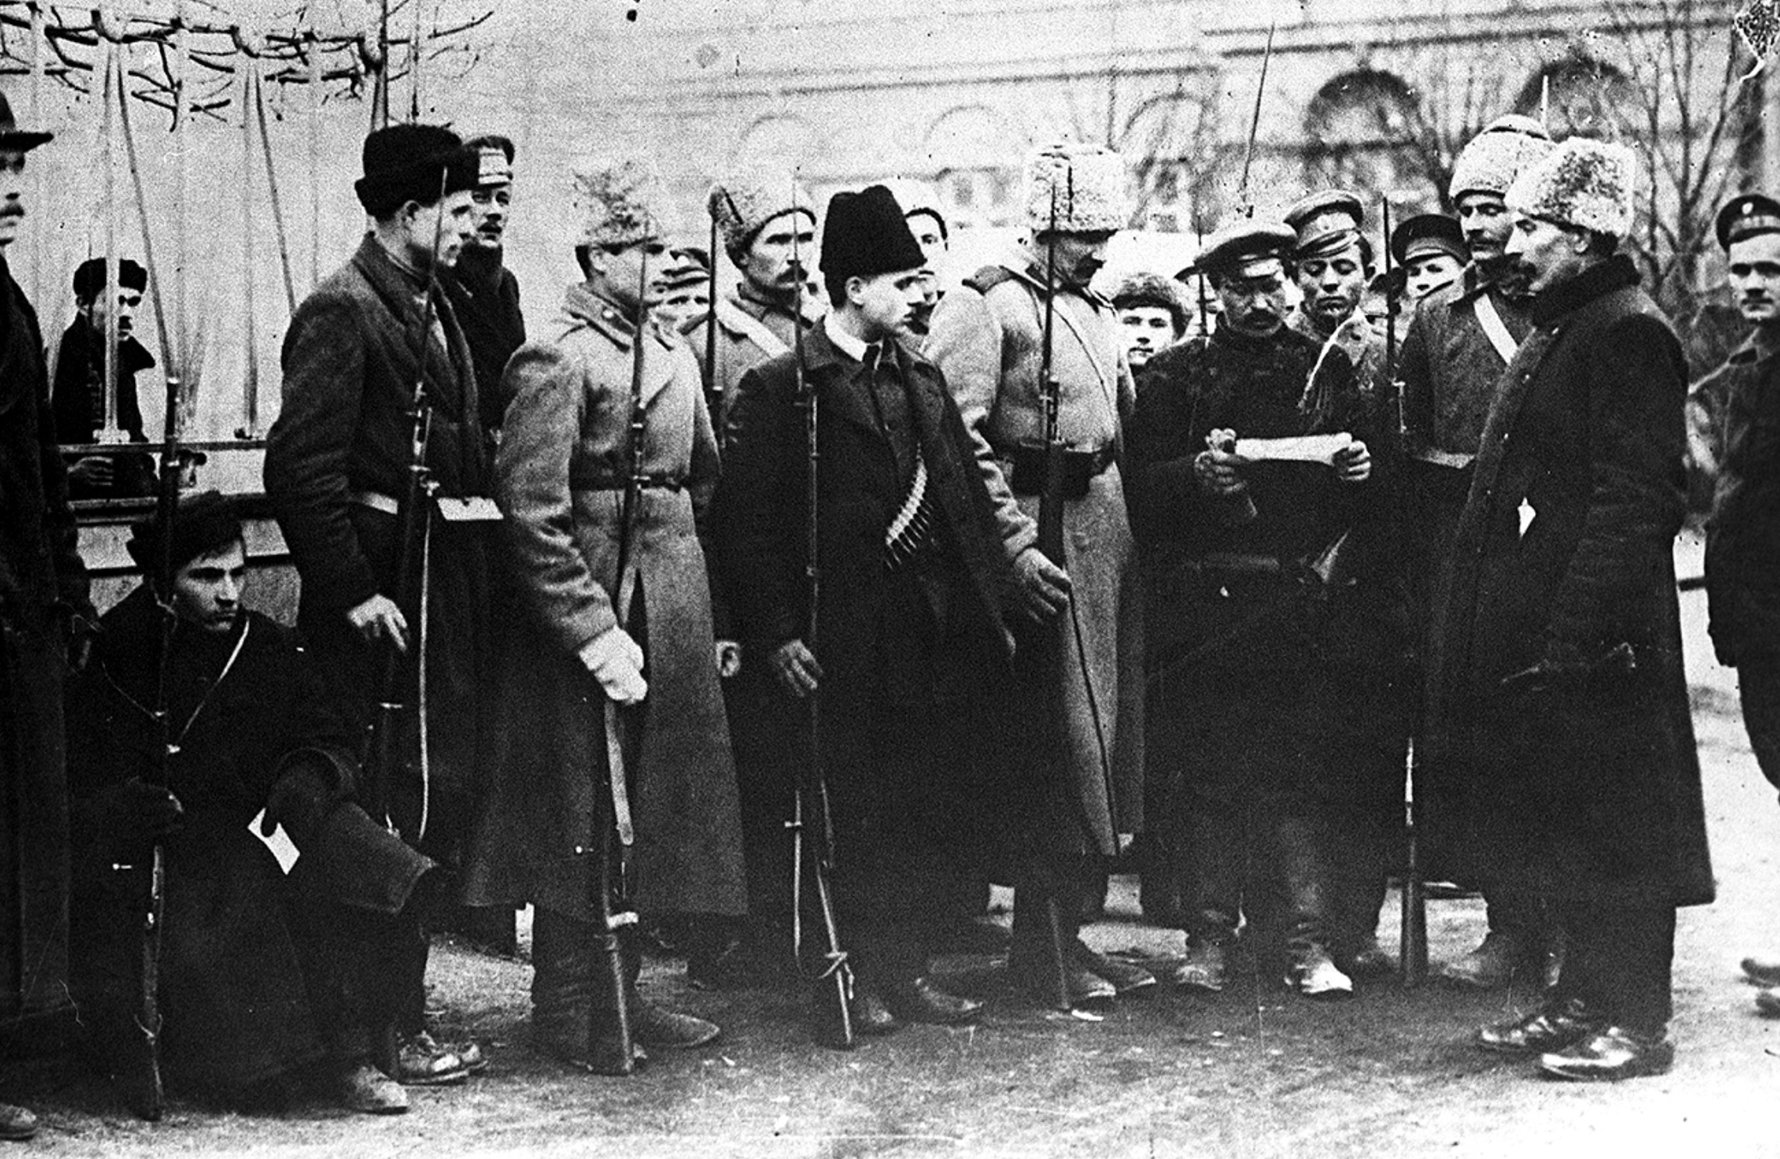 Russian Revolution Attractions in Moscow - Red Guard on Patrol 1917